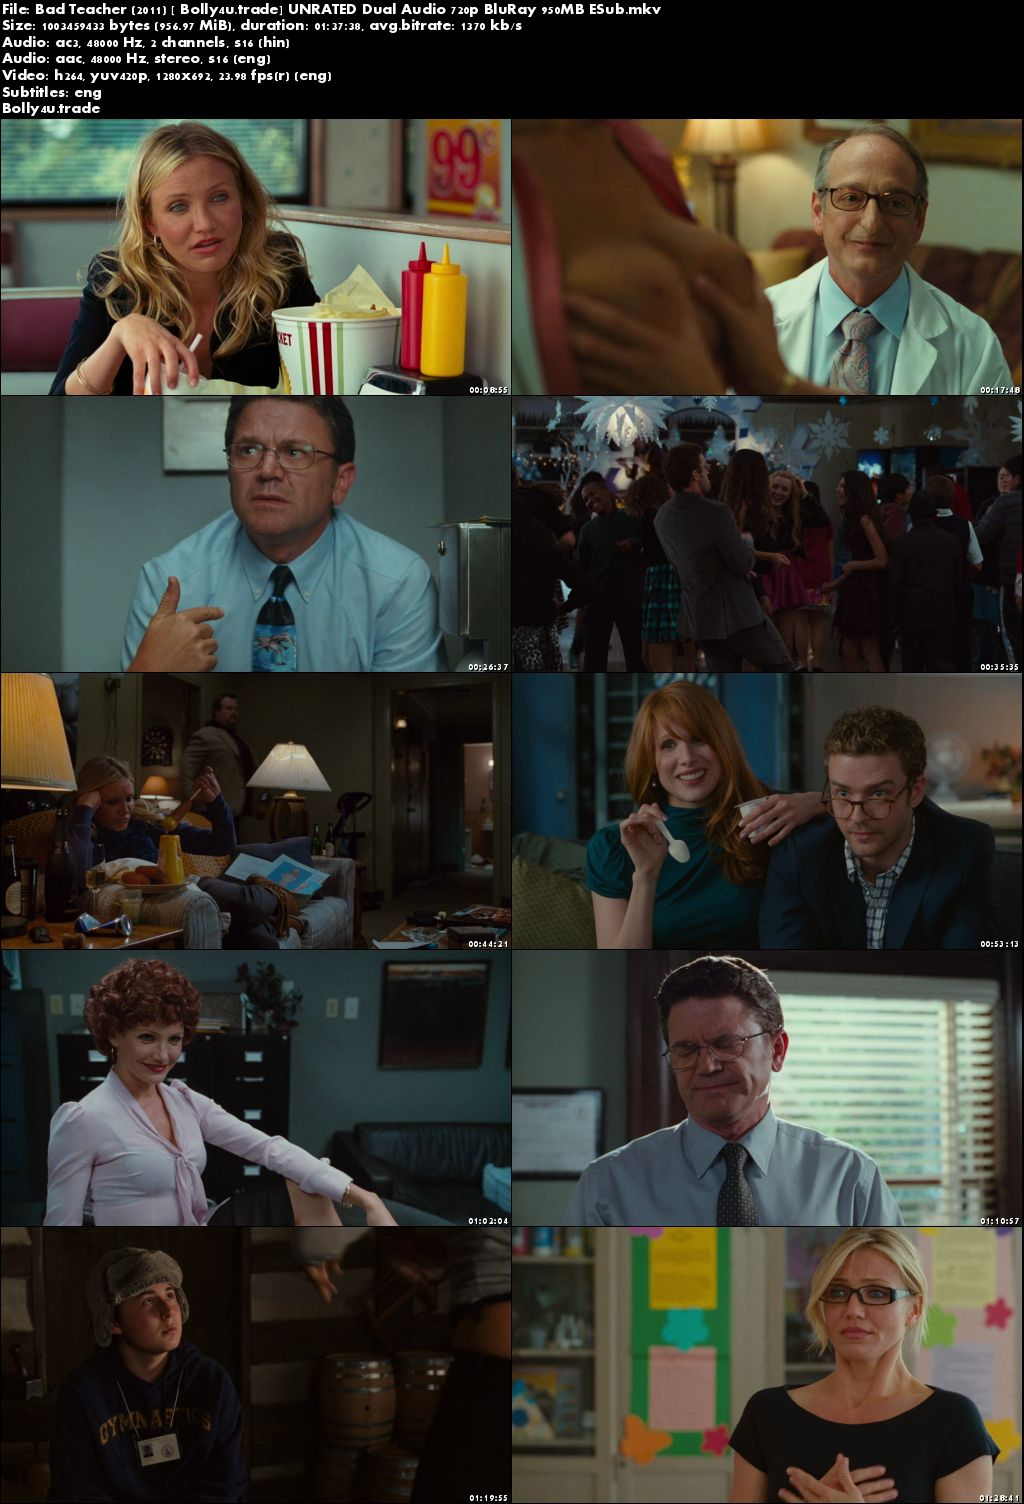 Bad Teacher 2011 BluRay 950MB UNRATED Hindi Dual Audio 720p ESub Download